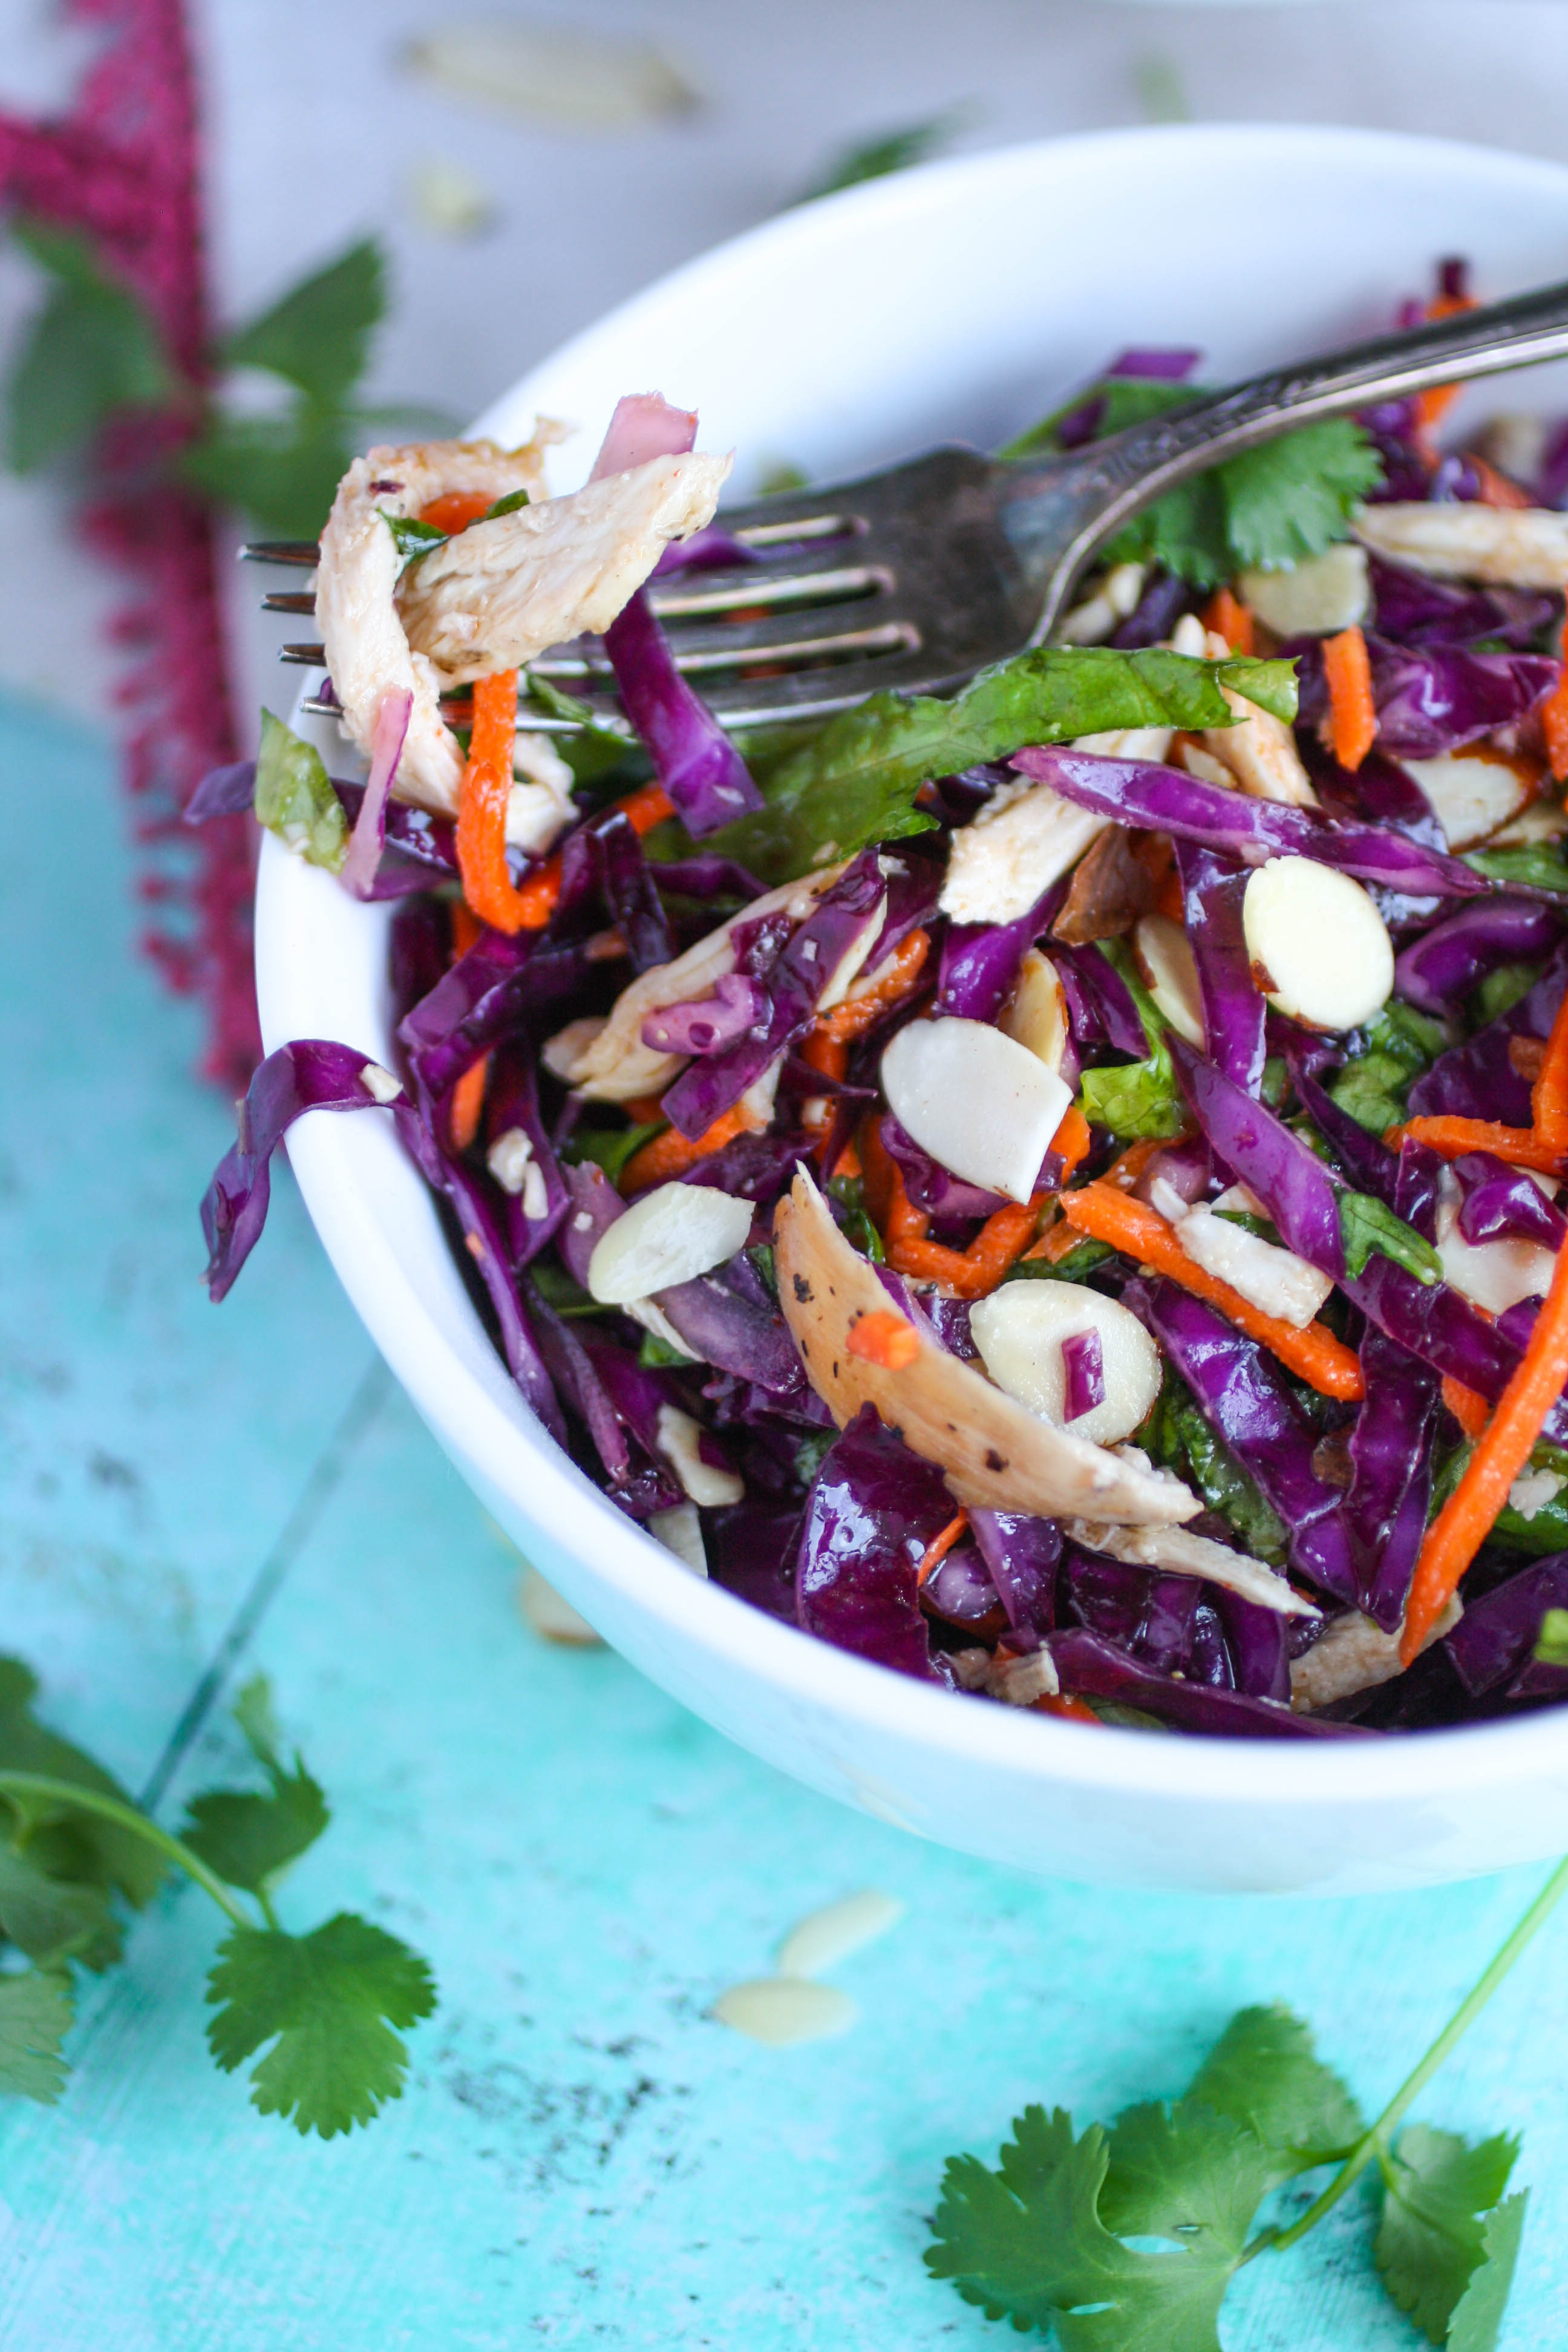 Crunchy Cabbage & Chicken Salad with Sesame Dressing is a nice dish to serve for lunch or dinner. You'll love the color and flavor in this crunchy cabbage salad!